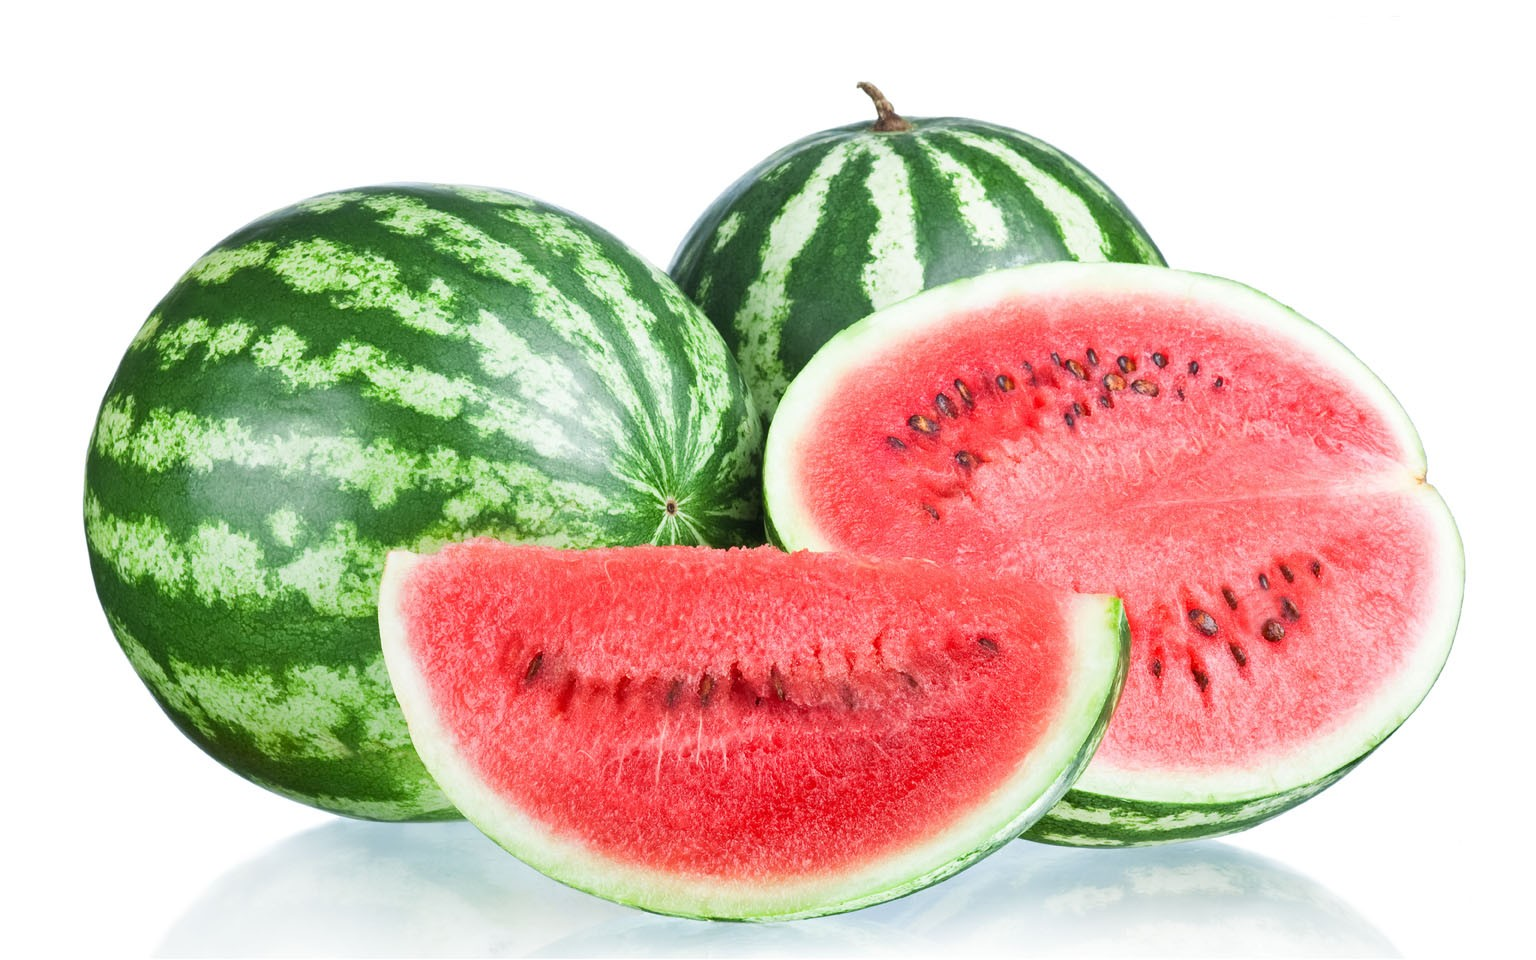 fruits water melon